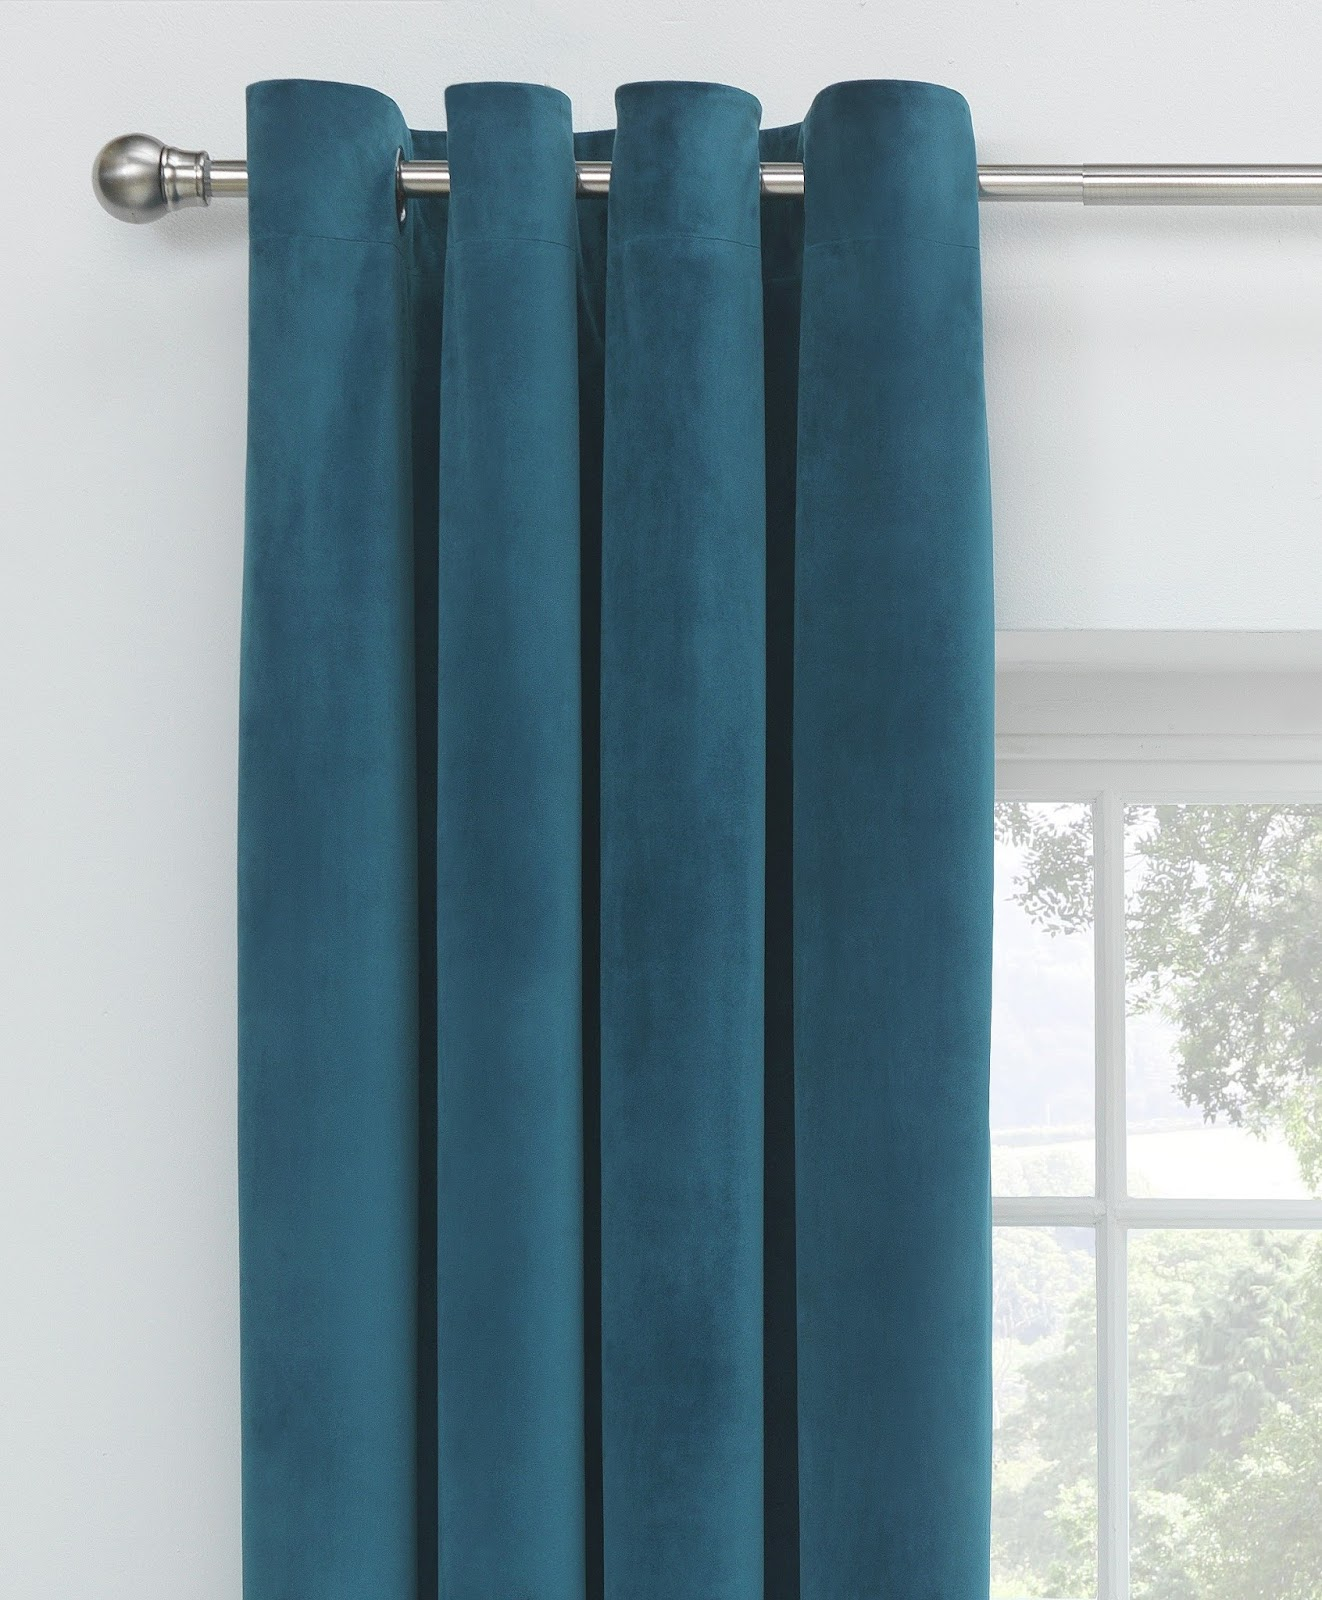 Crystal Door Curtain Beads Curtains Garland Cubby House Cubicle Track